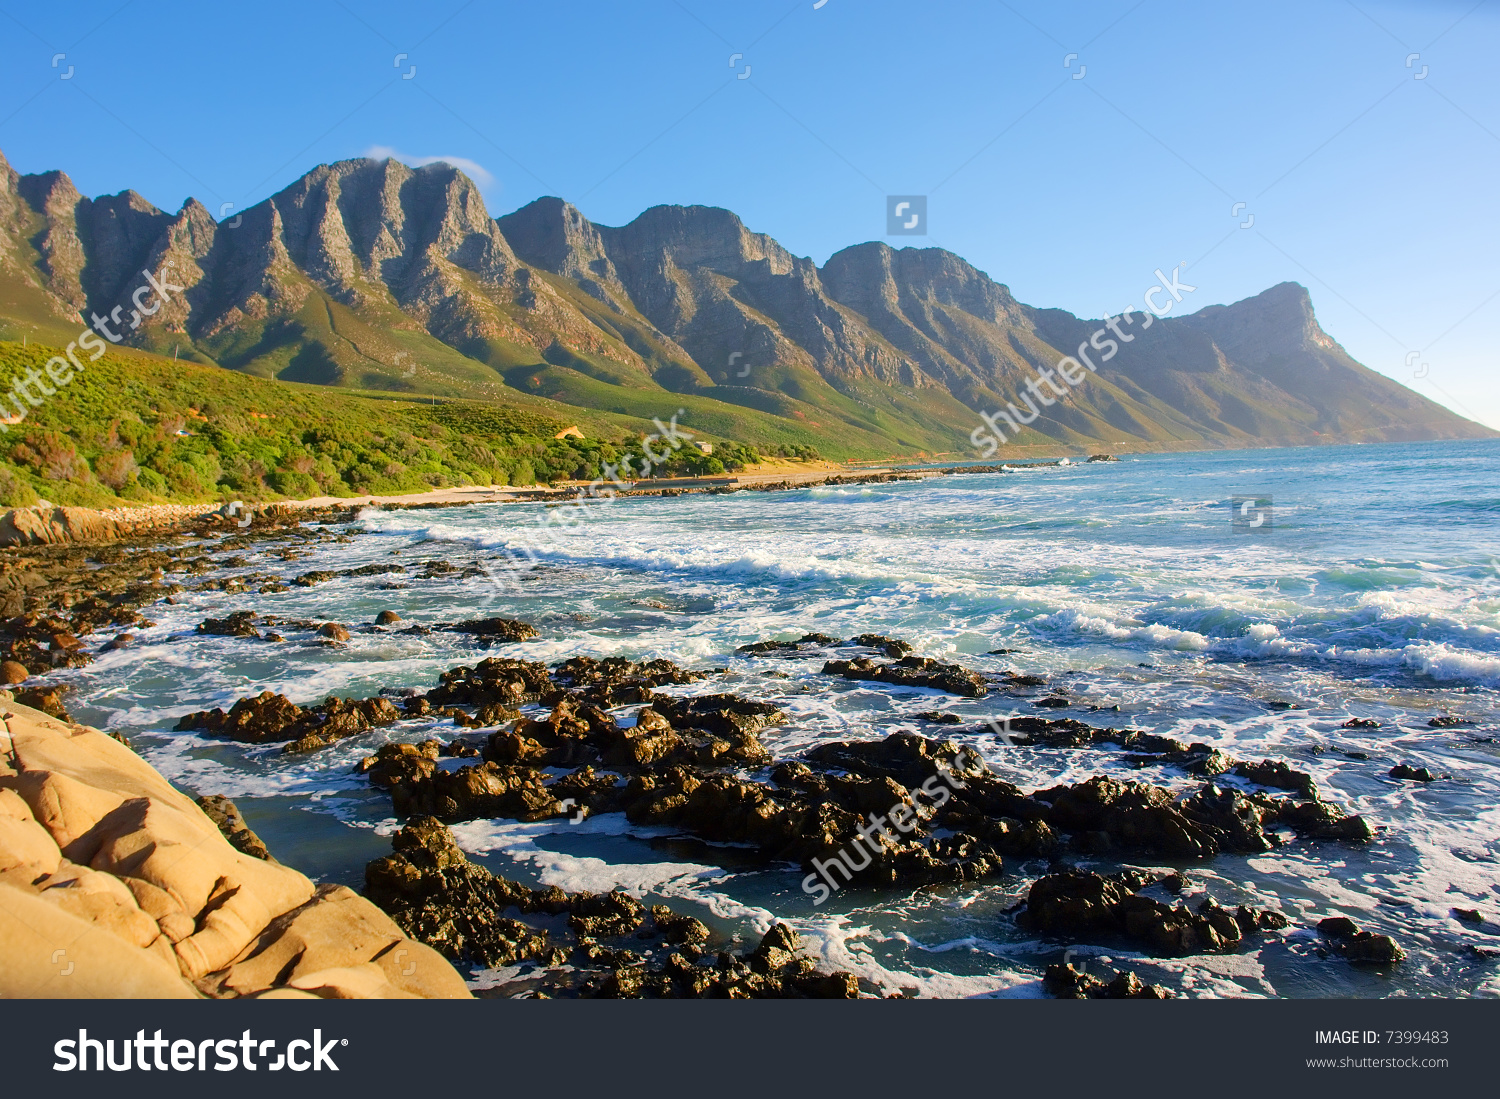 Beach With Rocks And Misty Mountains In Sunset Light. Shot In.